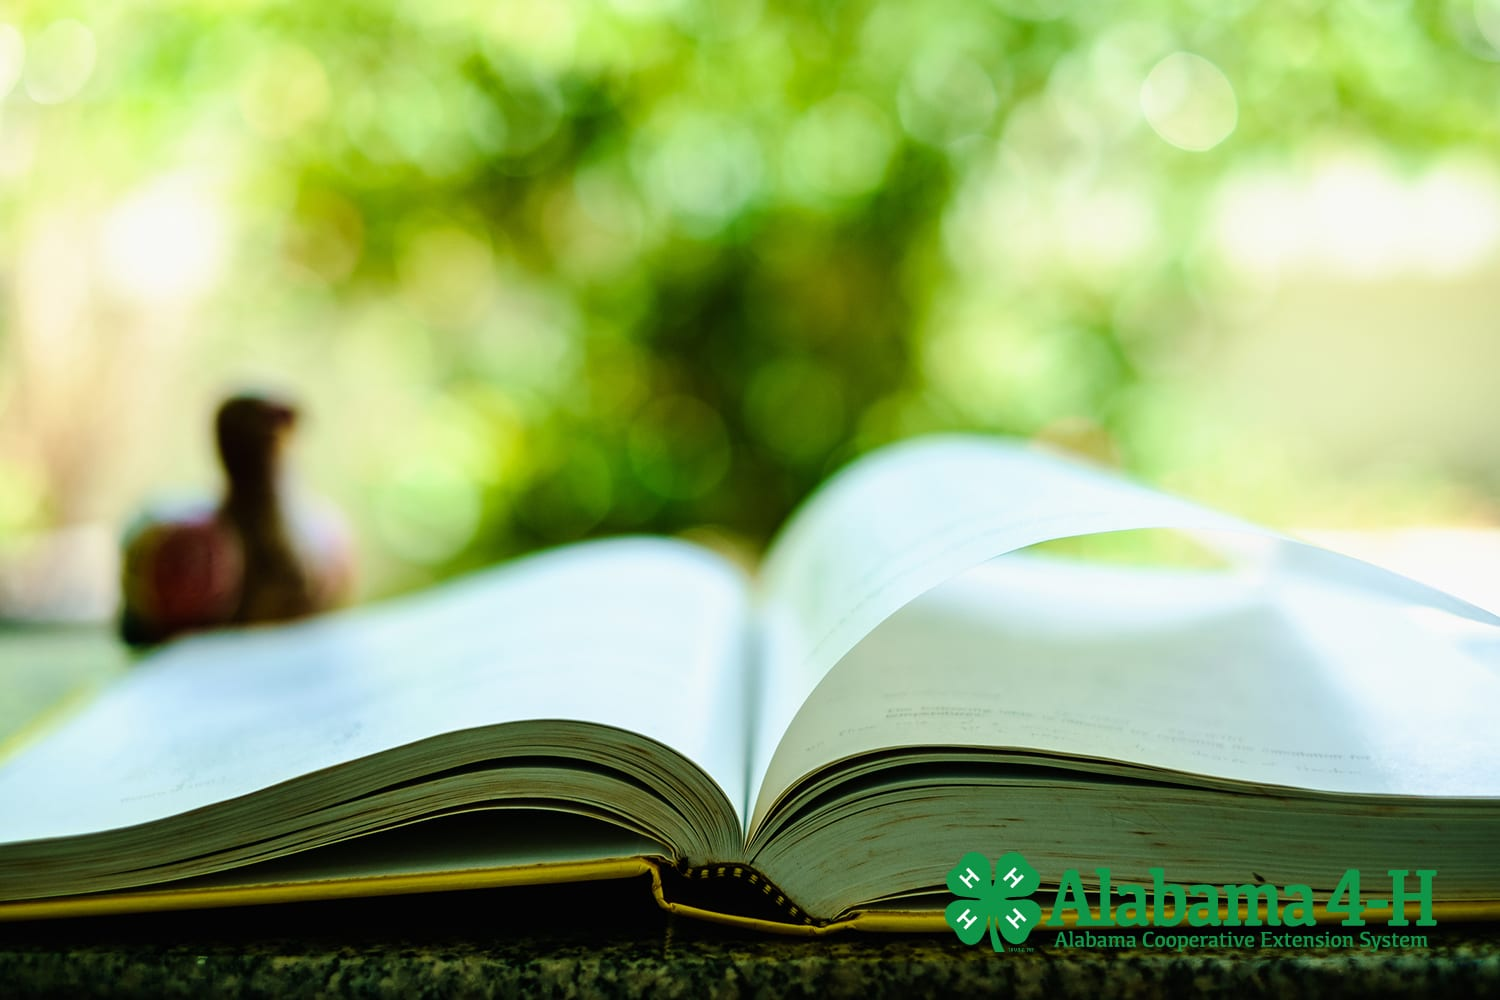 Alabama 4-H; book open on table for storytelling